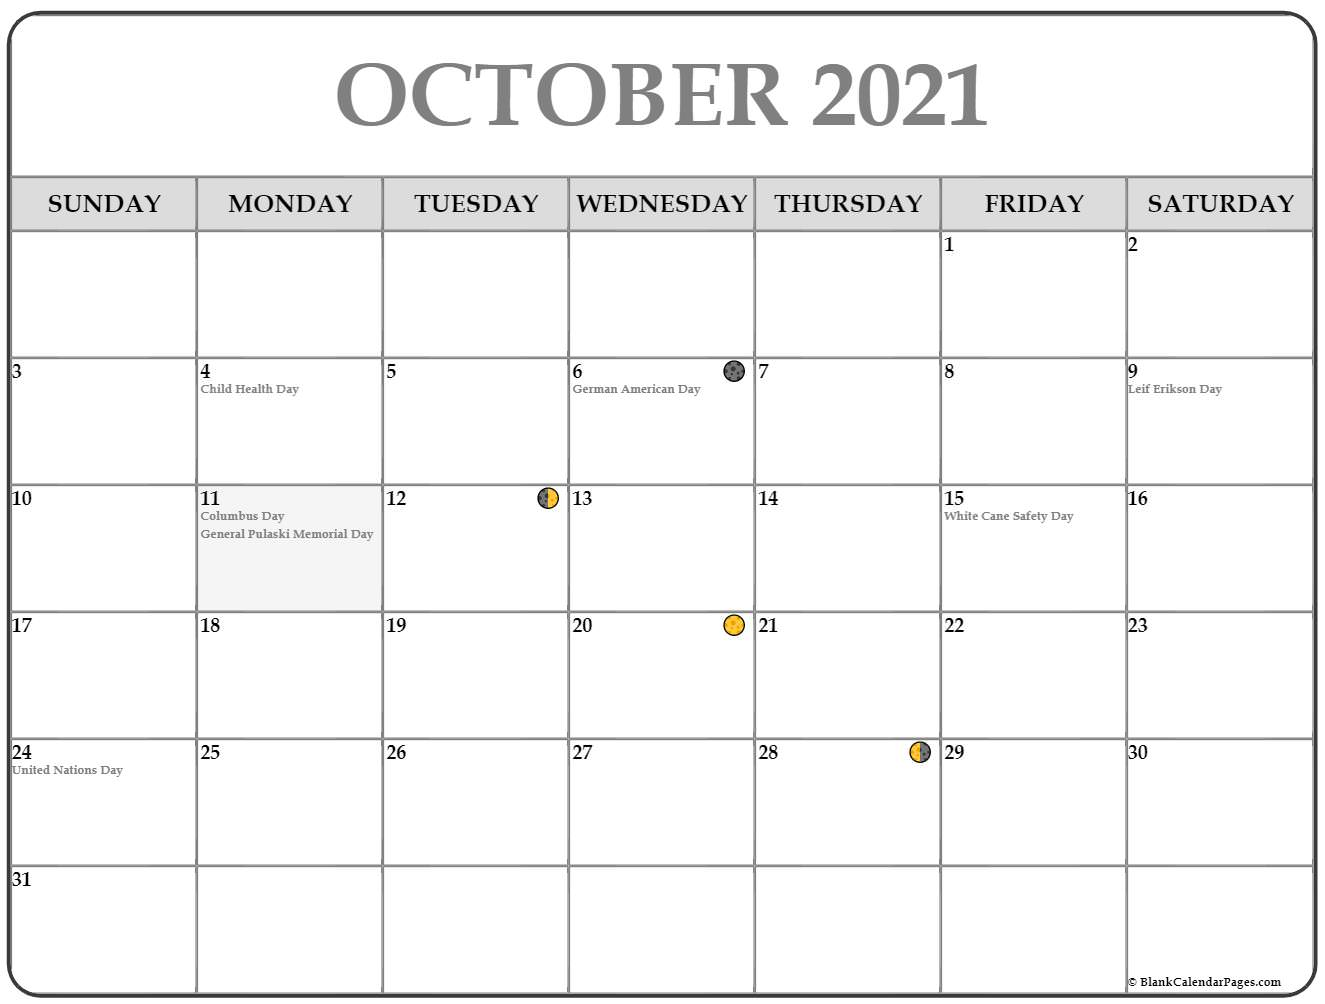 2021 October moon phases template